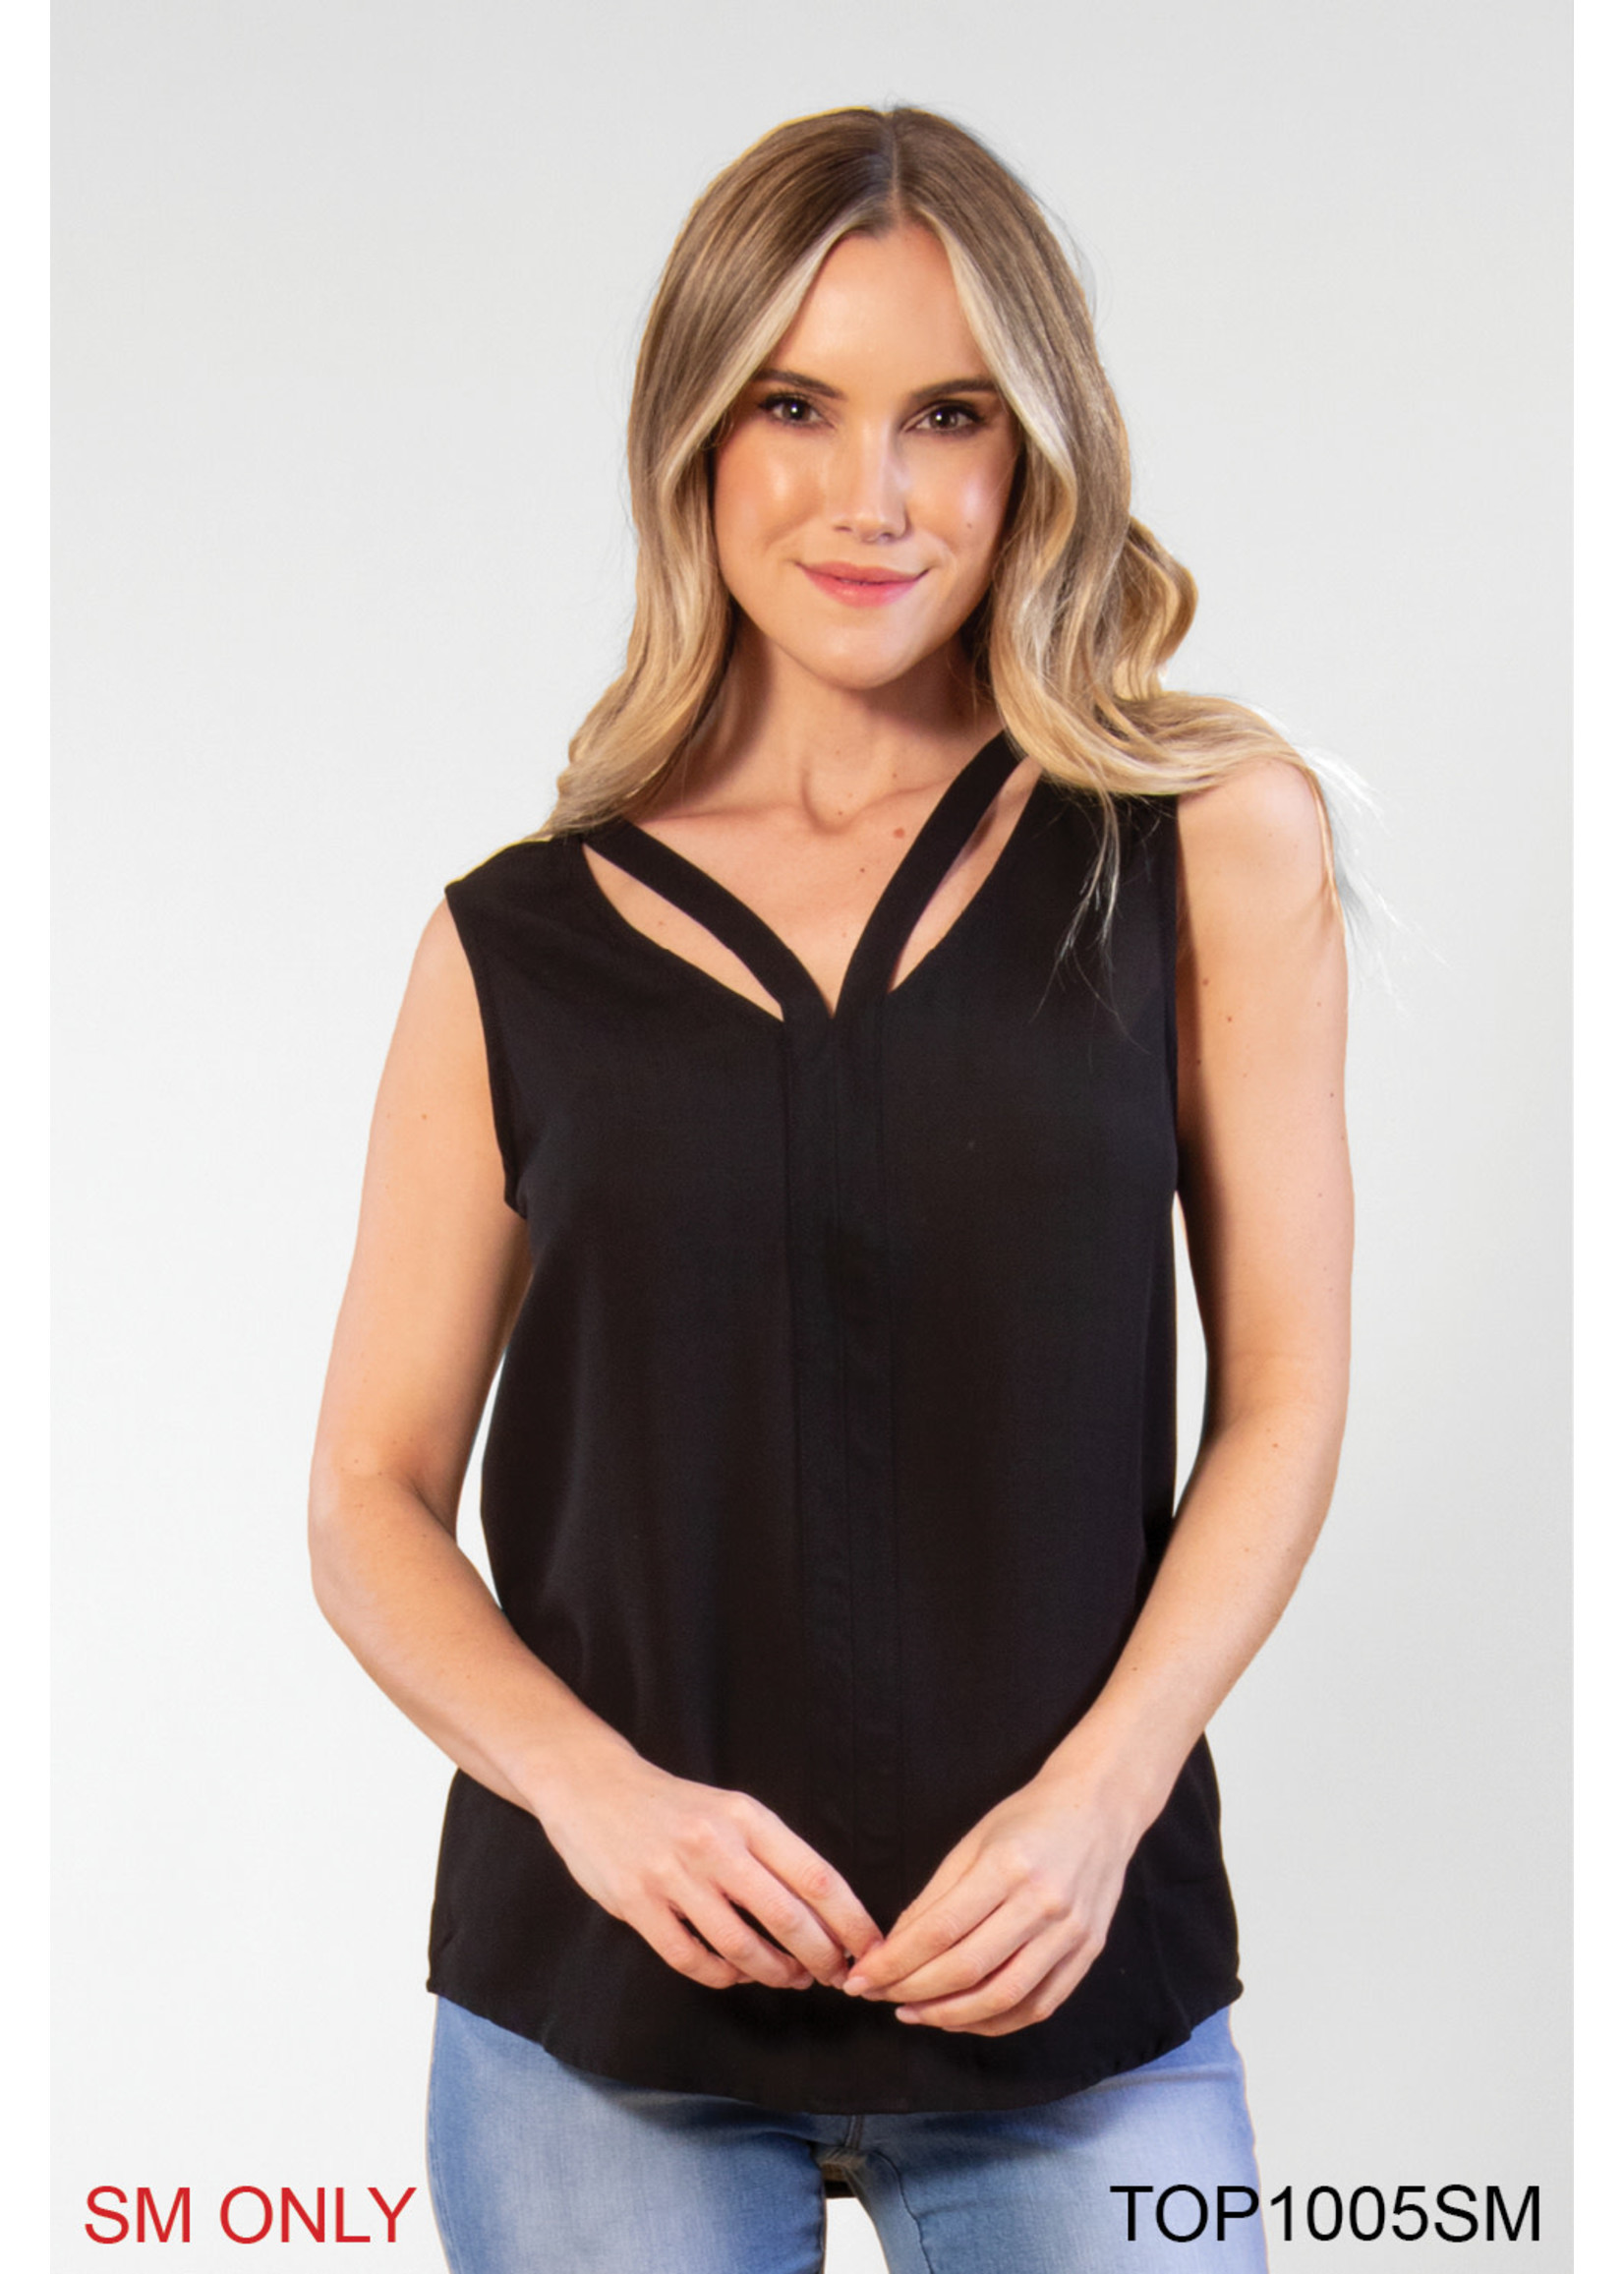 SIMPLY NOELLE CUT TO THE CHASE TOP ASSORTED COLORS L/XL